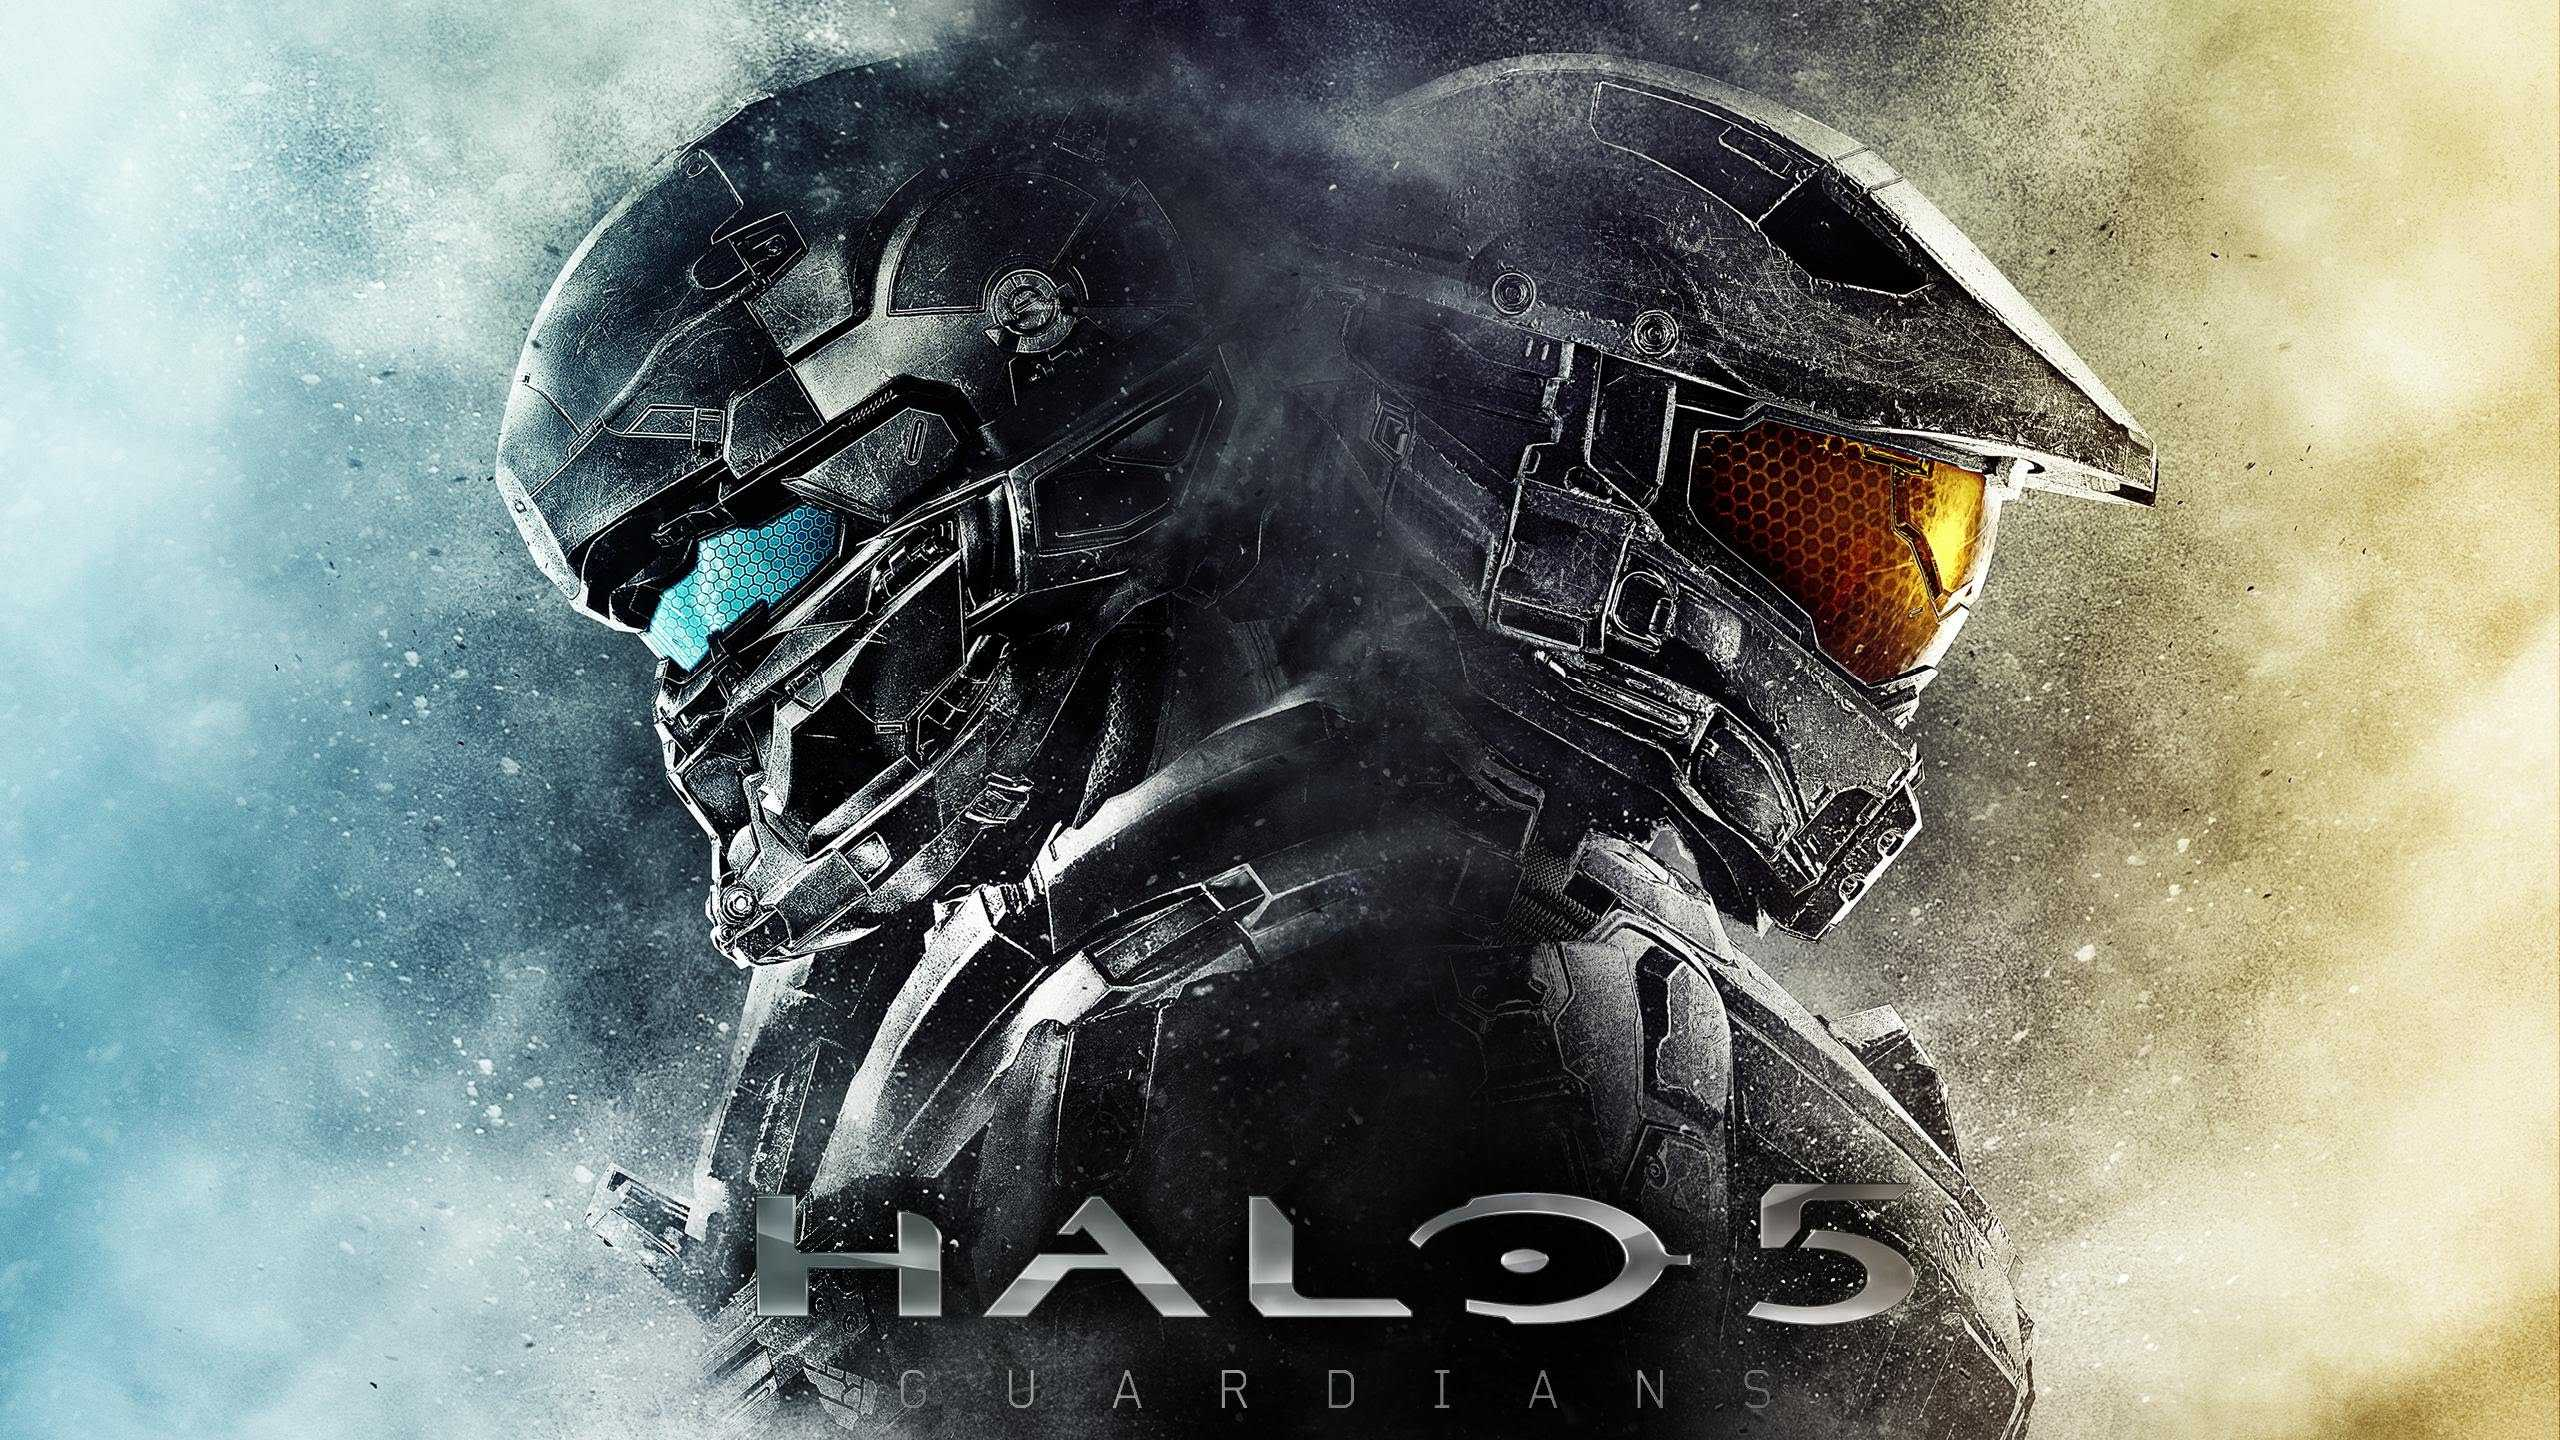 Halo 5 Guardians Warzone Firefight – New Details Emerge